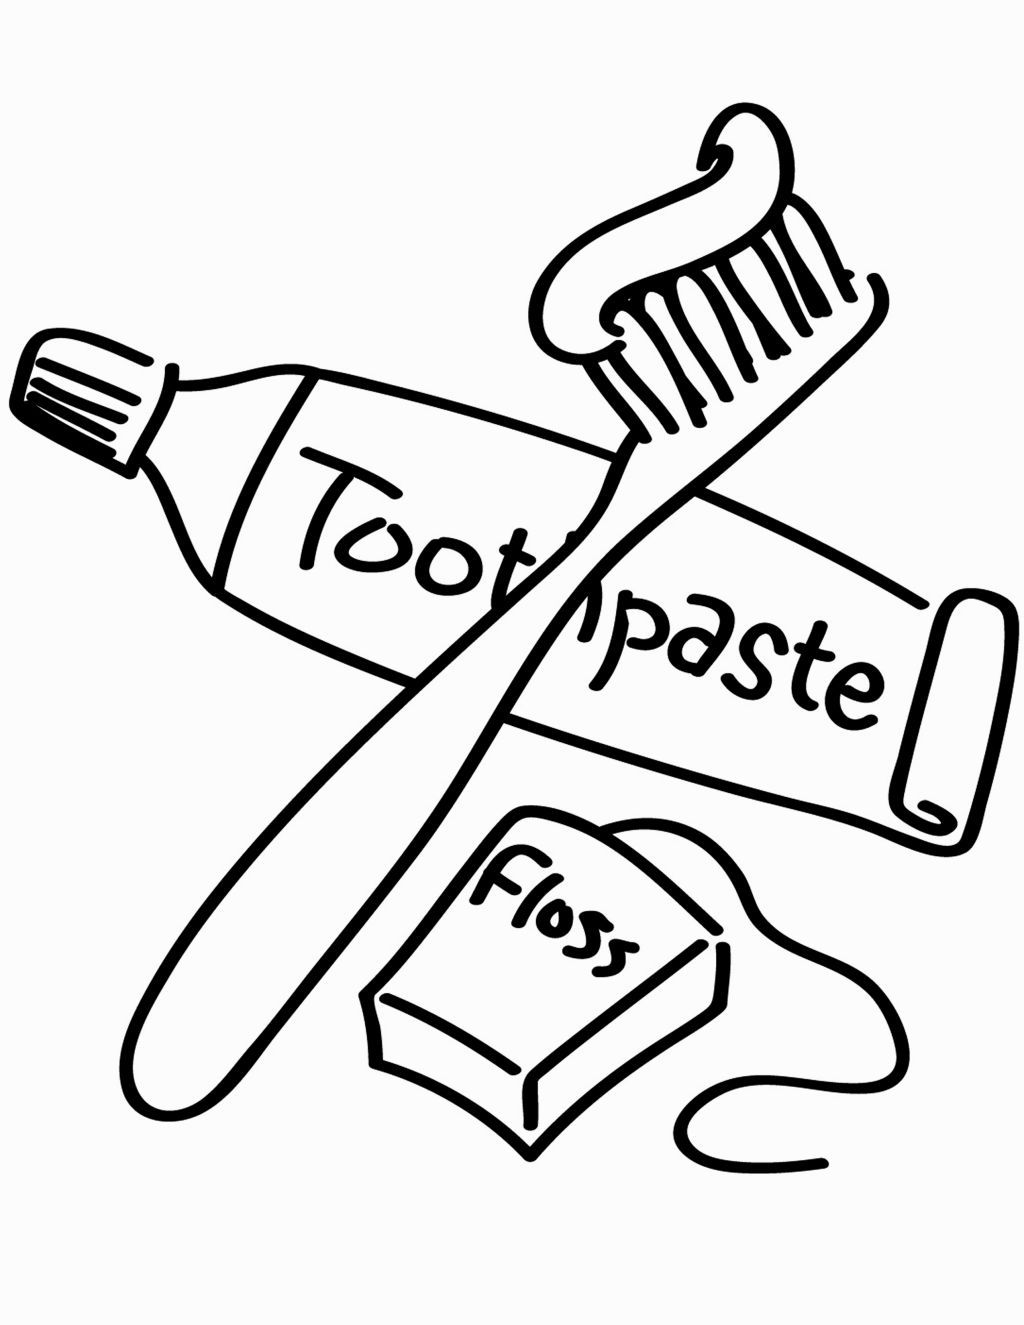 Dental Coloring Pages Printable | Coloring Pages | Pinterest ...